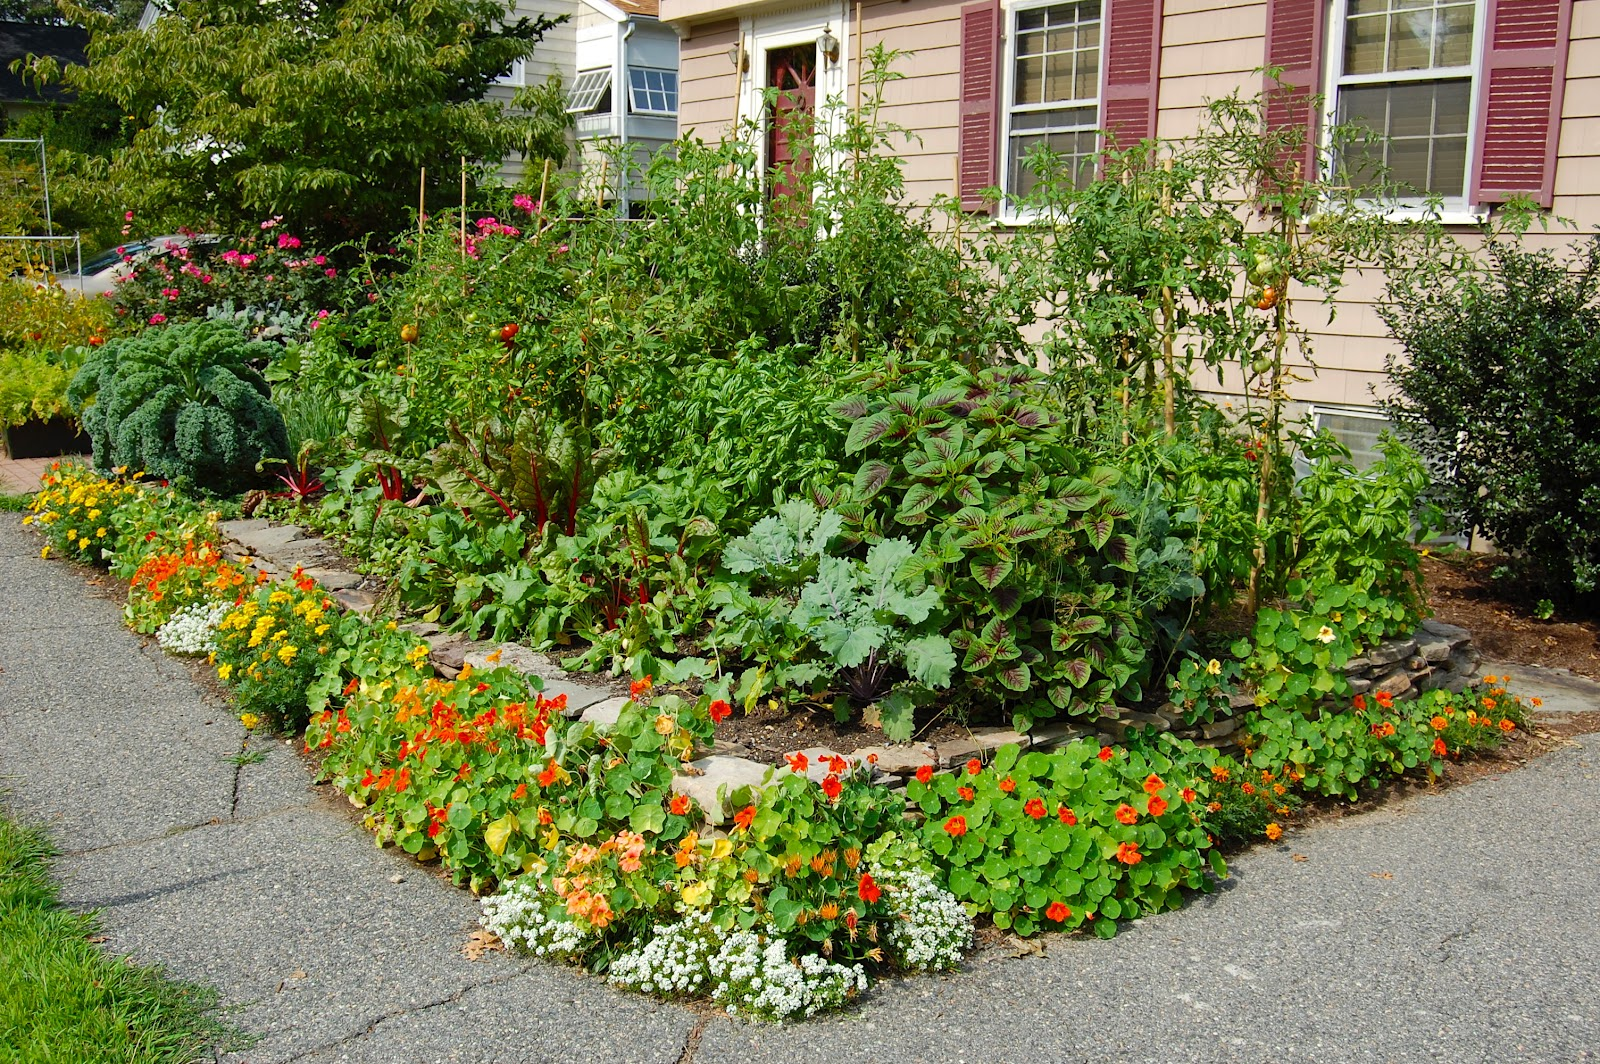 Landscaping landscaping ideas for front yard edible gardens for Garden design for front gardens